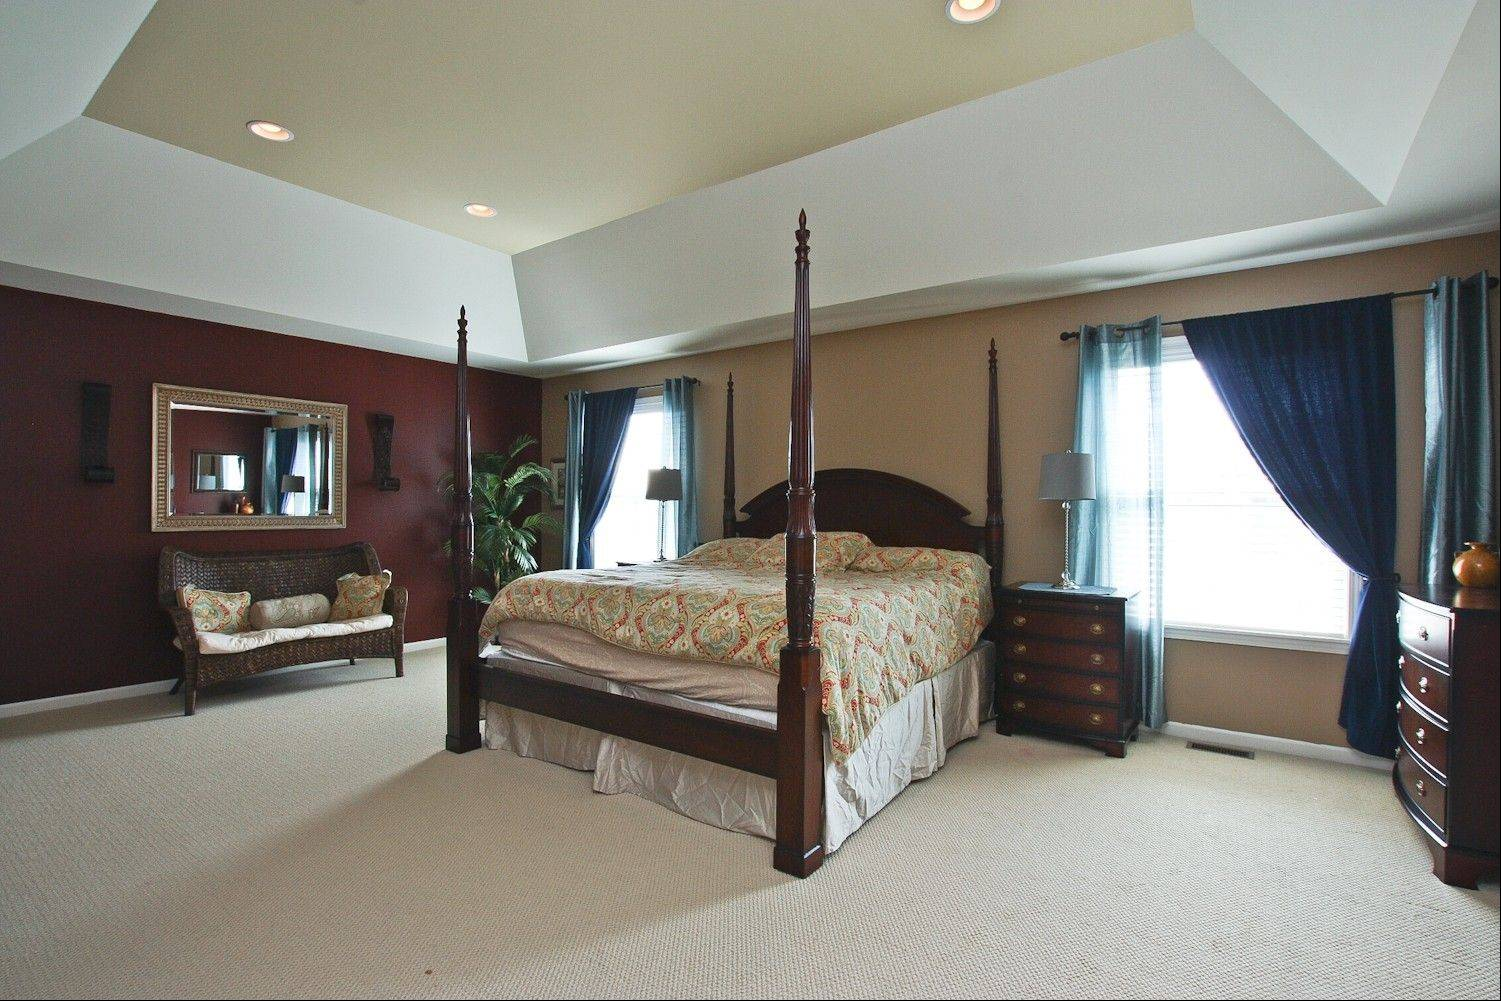 The master suite has a vaulted ceiling and two walk-in closets.